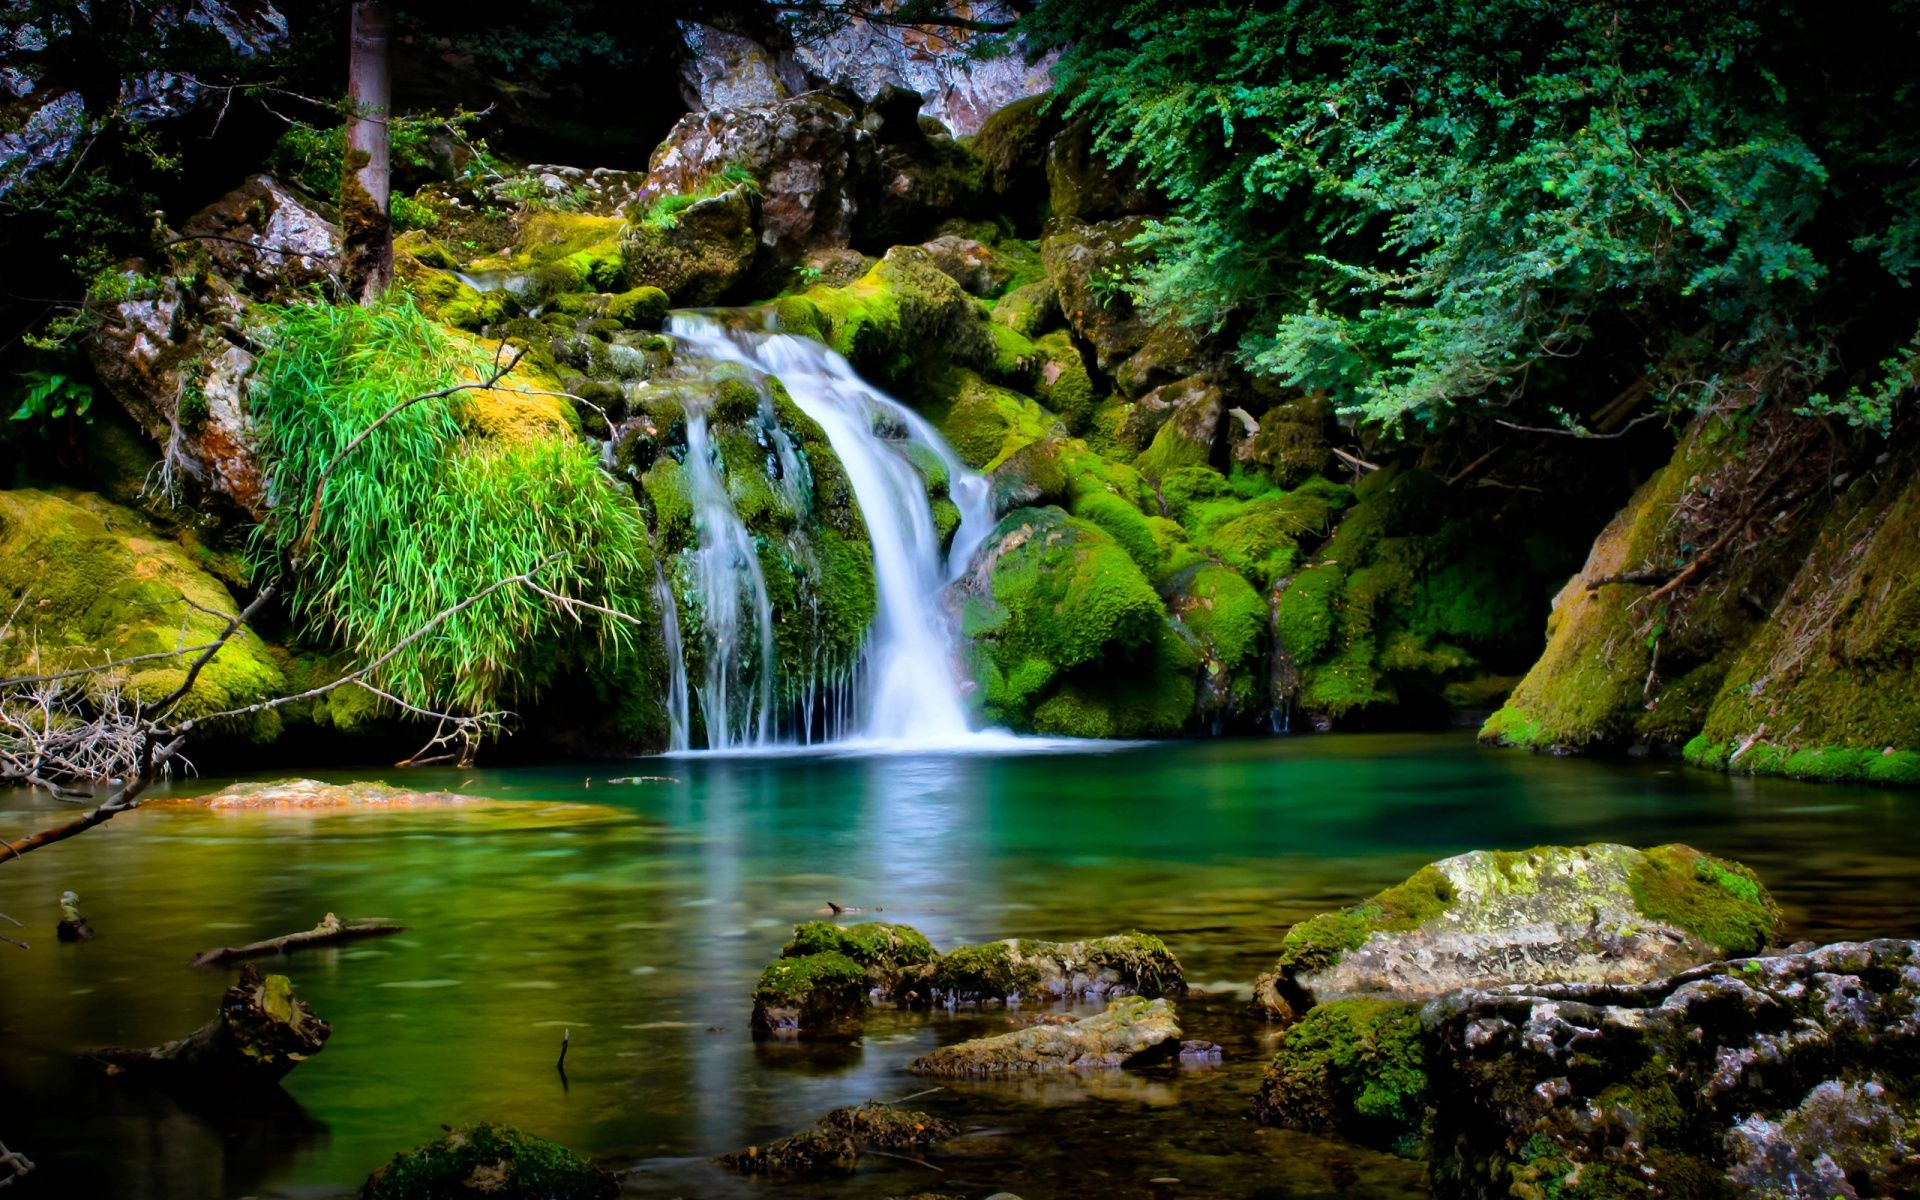 computer wallpaper | waterfall-wallpaper-desktop |hd wallpapers fan